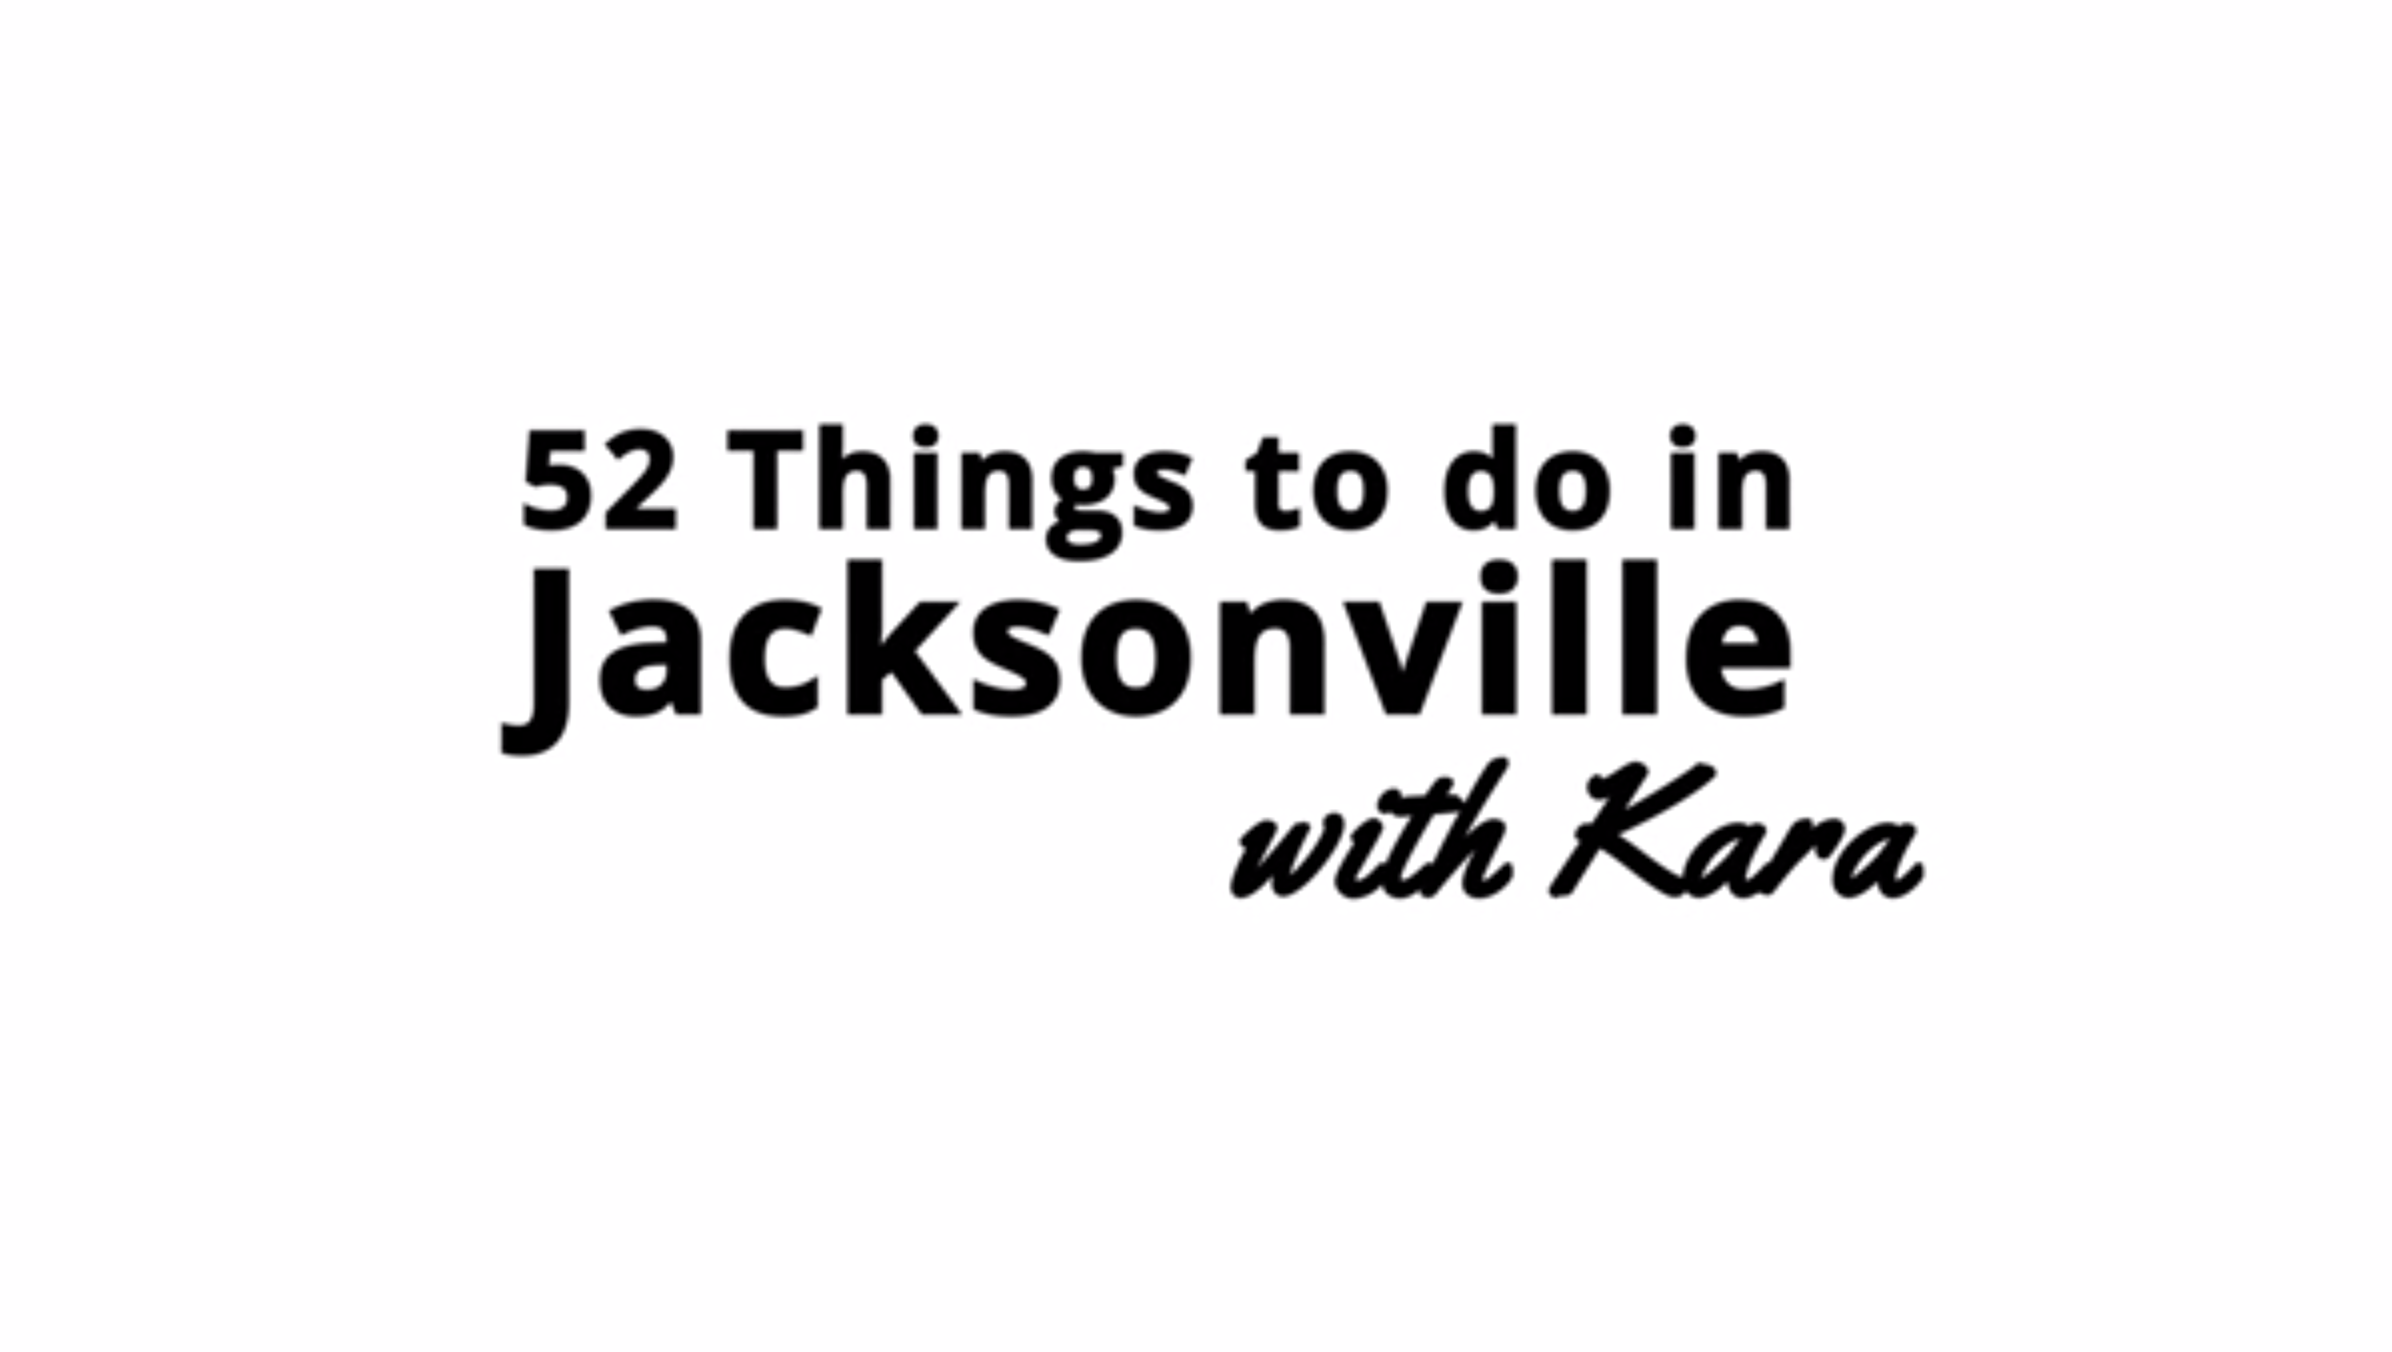 Neumann Realty Corp Debuts Its 52 Things To Do In